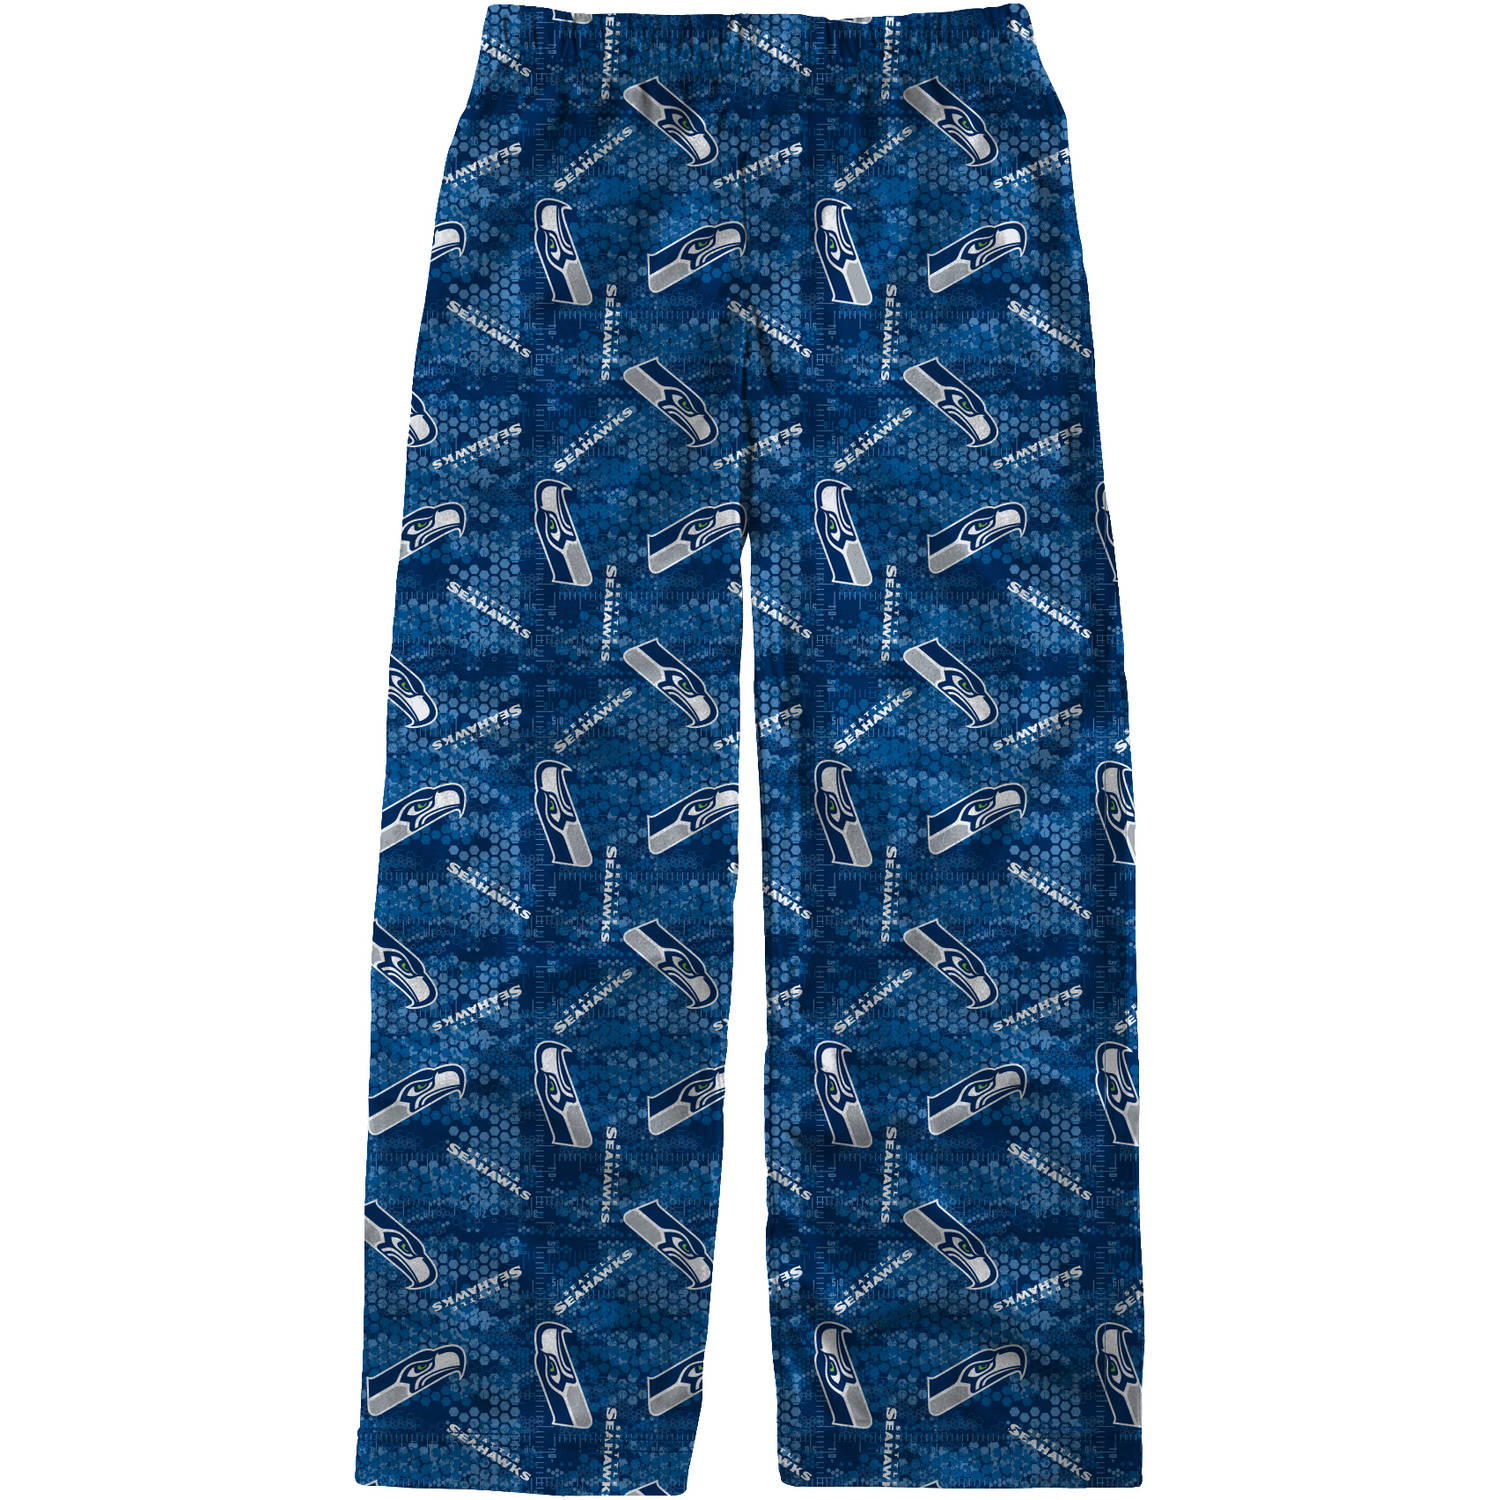 NFL Seattle Seahawks Youth Lounge Pant